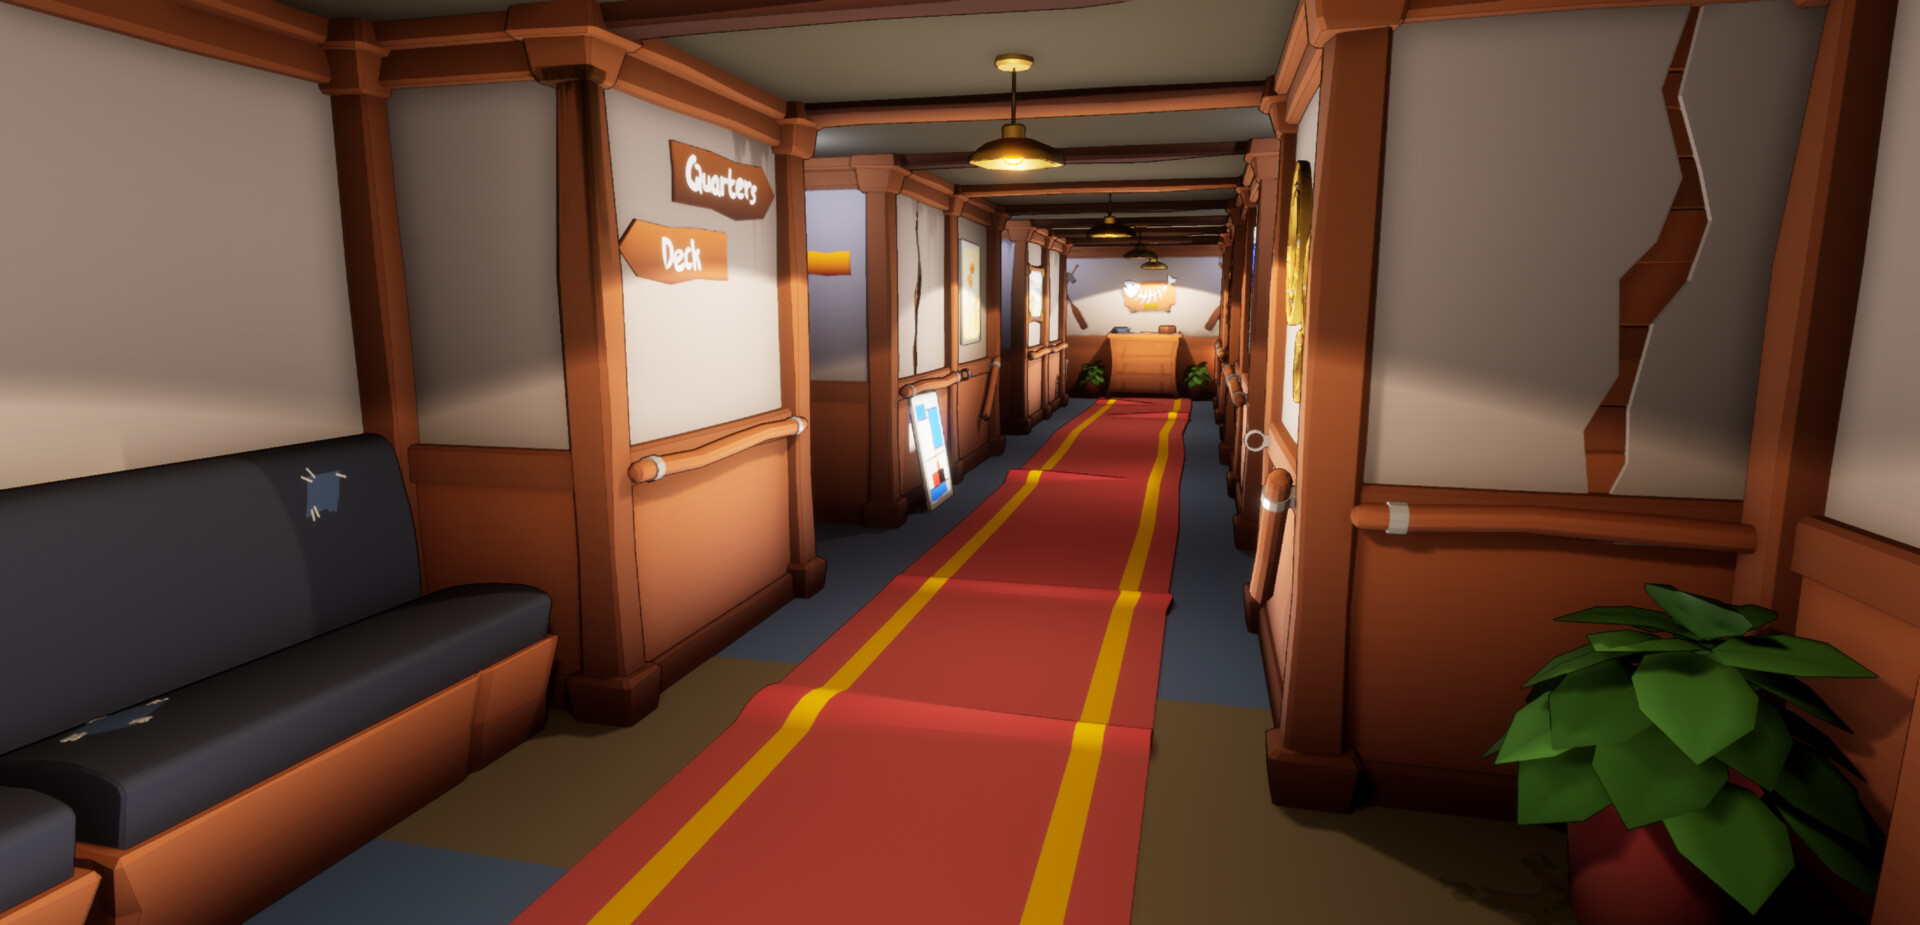 We decided to keep the below deck area clean, as multiple characters would be travelling throughout this area and we did not want to make it cluttered.